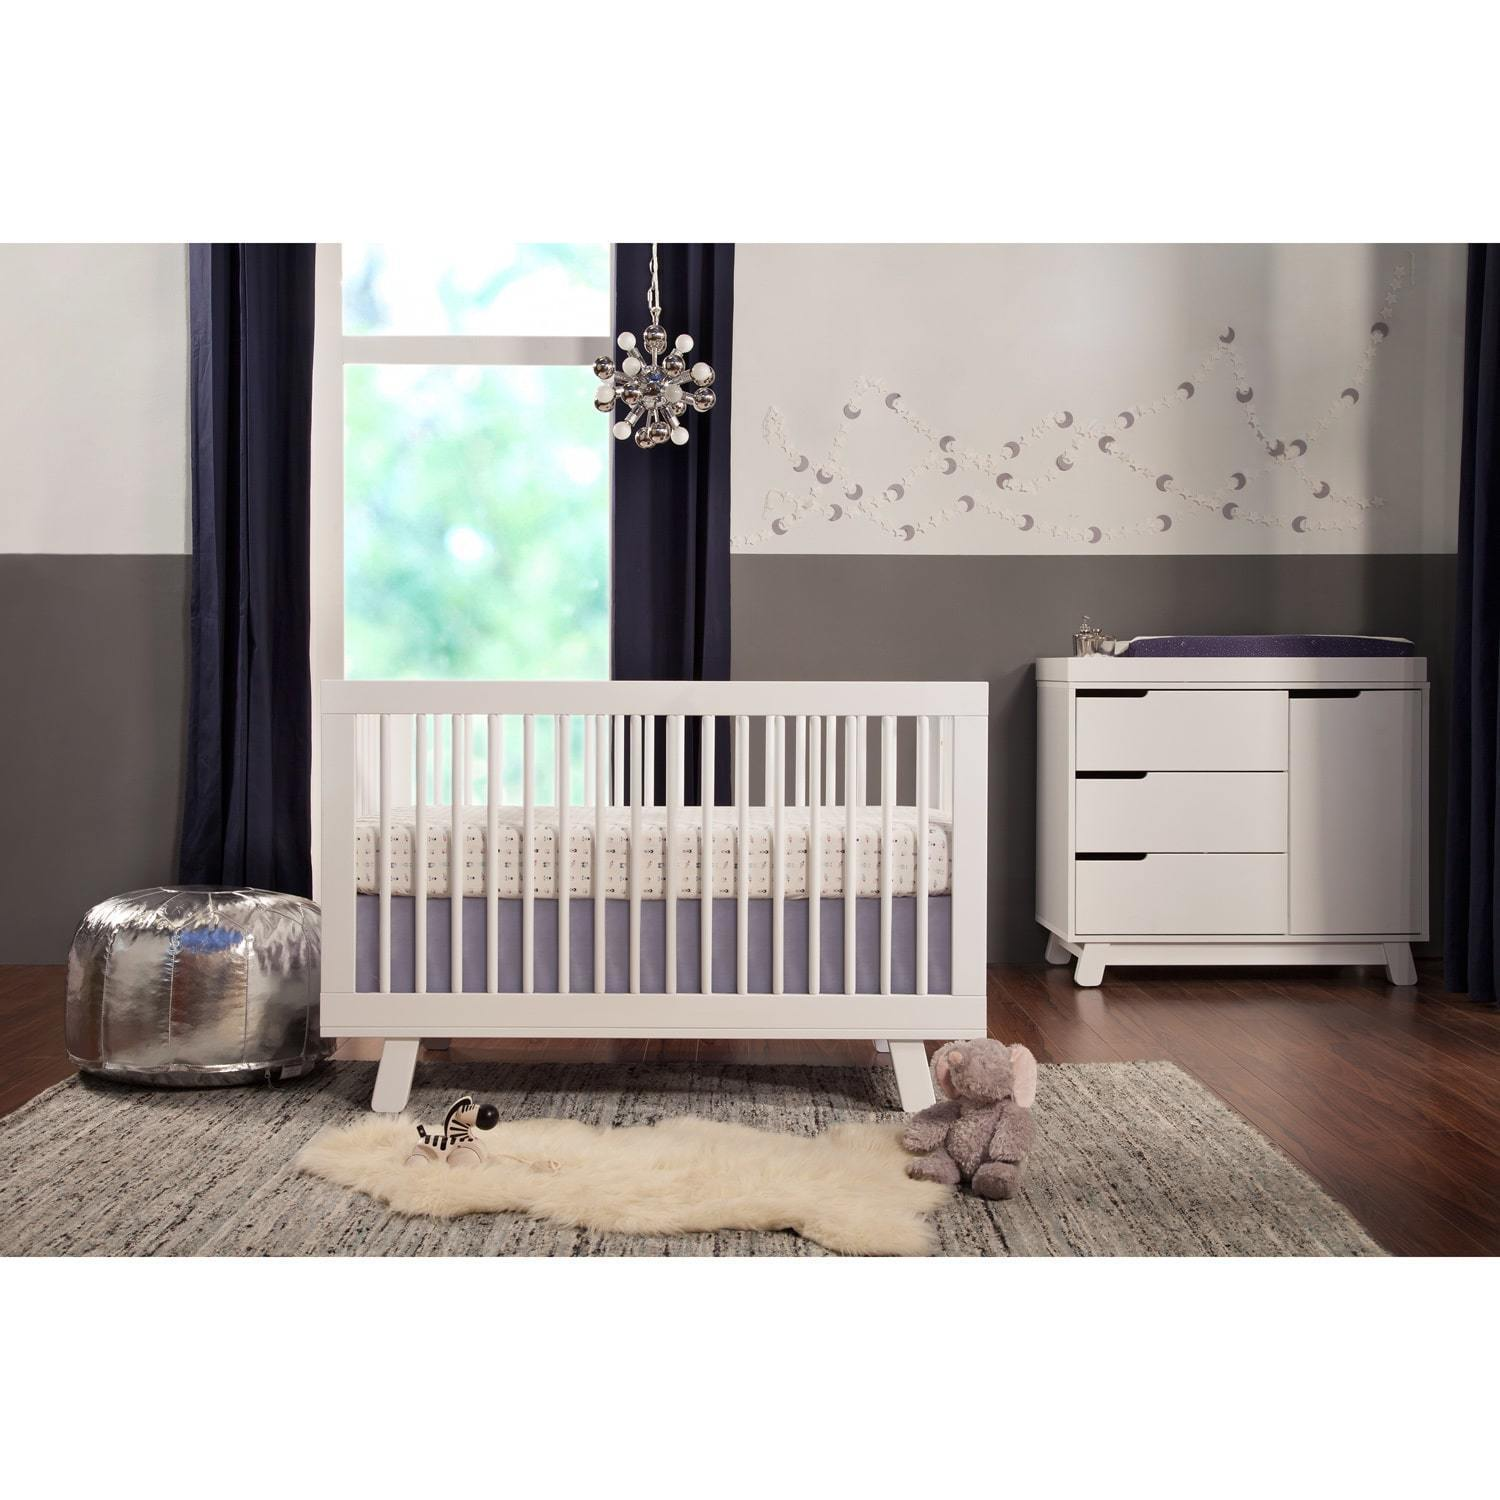 babyletto furniture. Shop Babyletto Hudson 3-in-1 Convertible Crib W/ Toddler Bed Conversion Kit  - Free Shipping Today Overstock.com 7658606 Babyletto Furniture